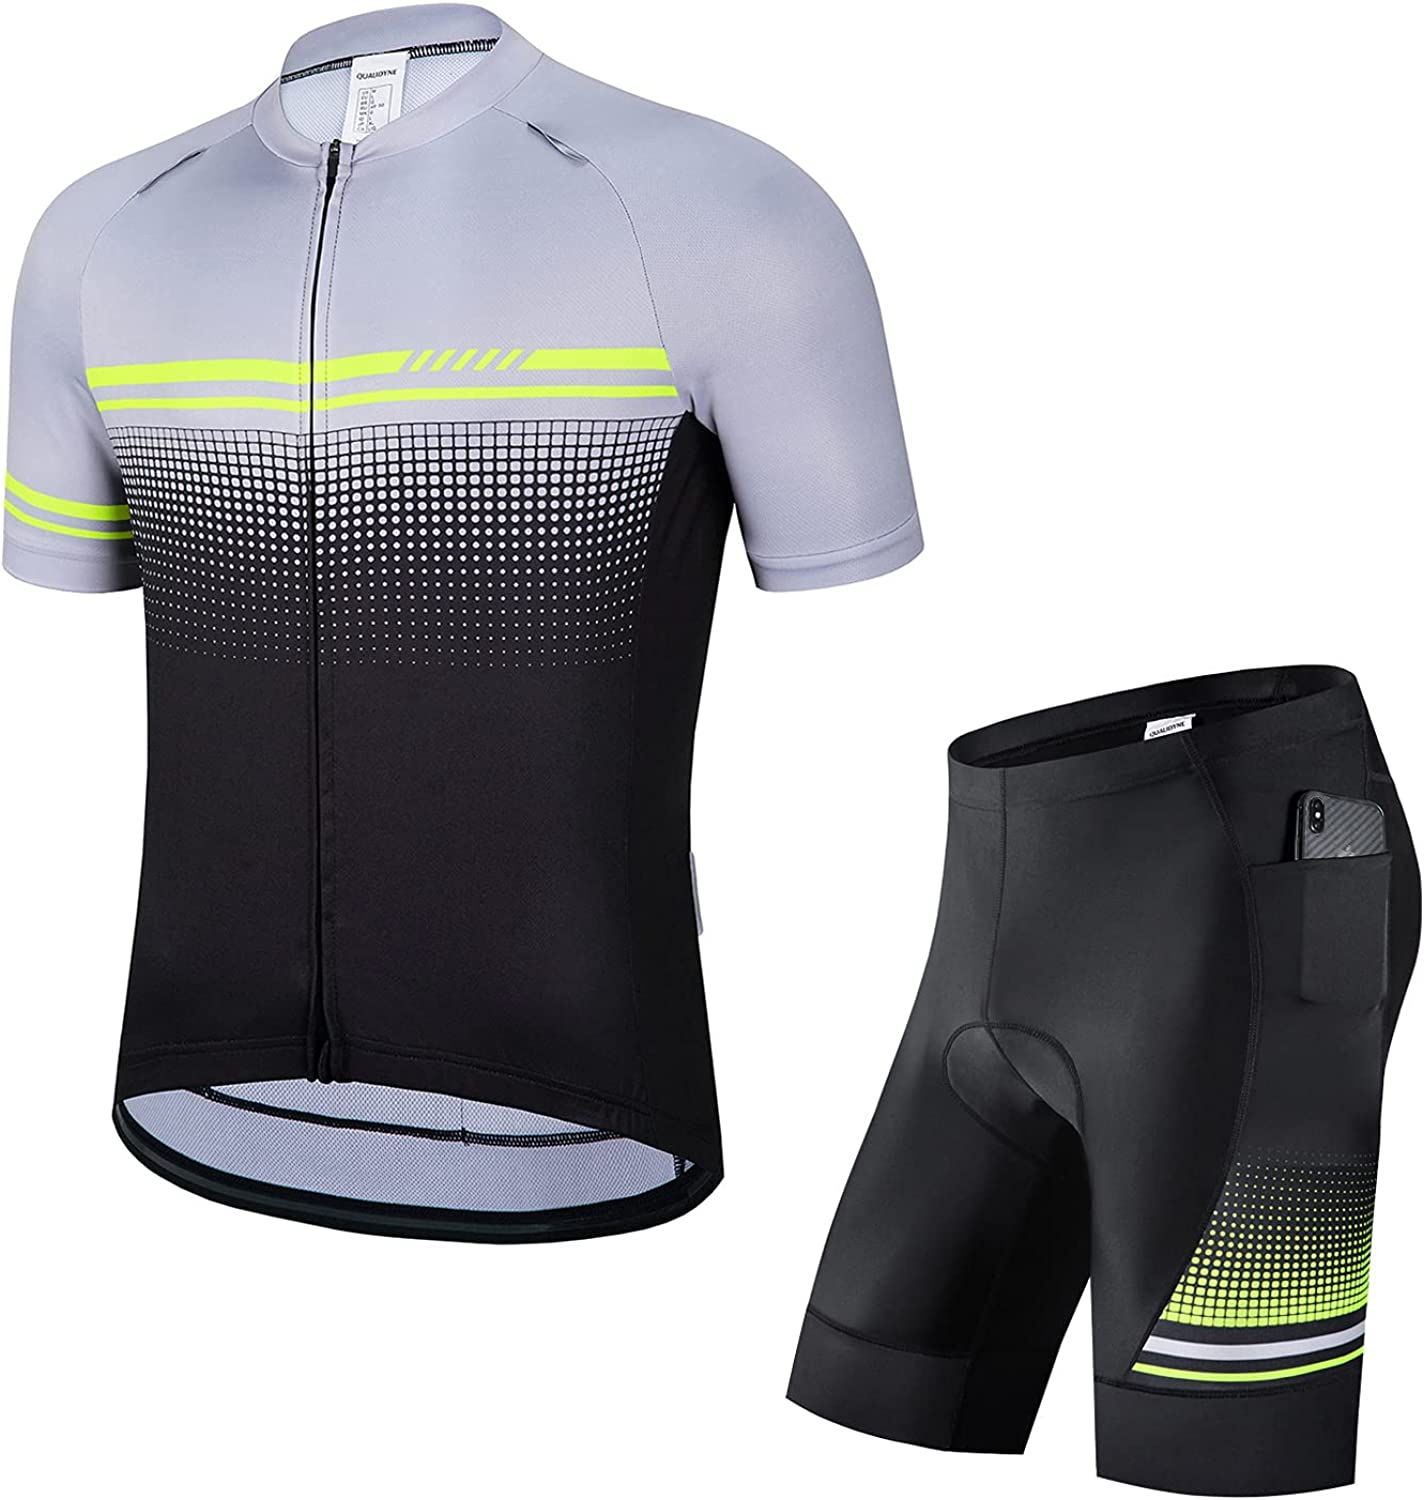 Max 88% OFF qualidyne Men's Cycling Jersey Set S Opening large release sale Short Bicycle Biking Sleeve